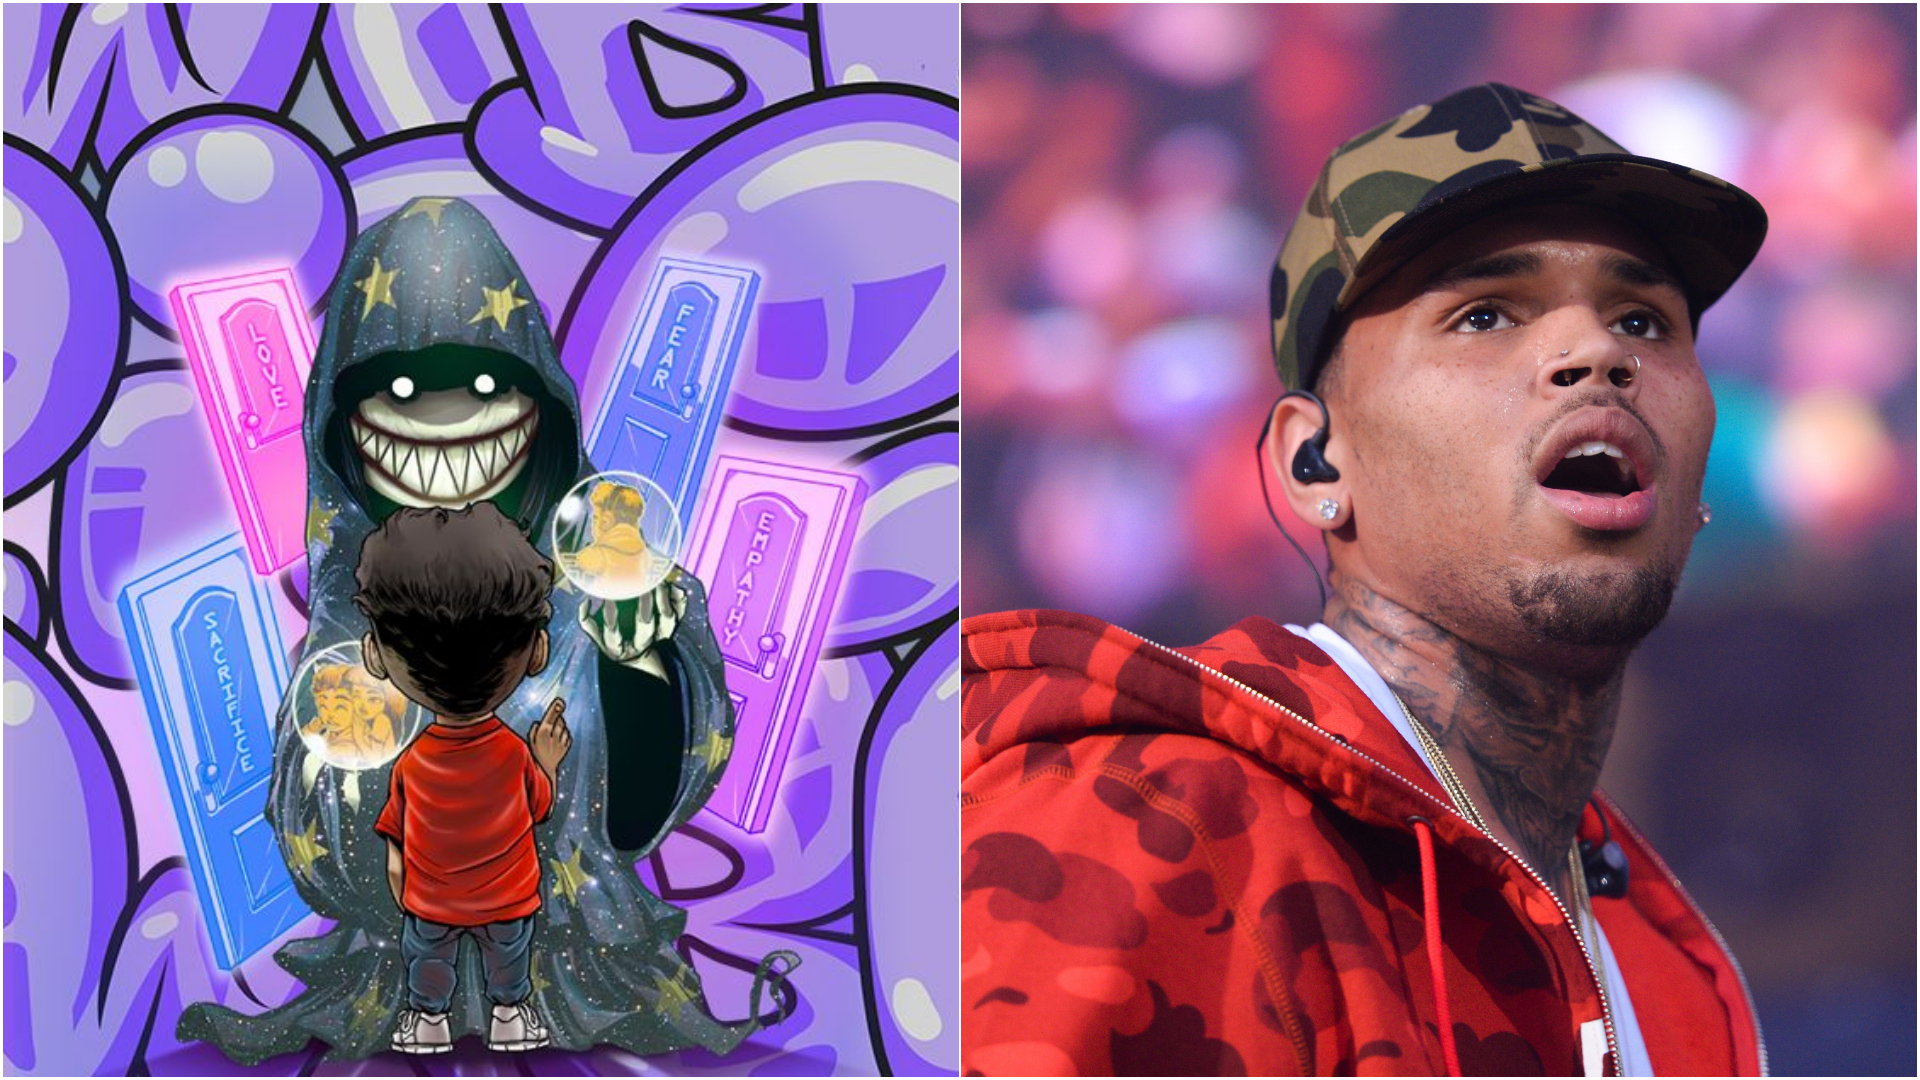 cartoon wallpaper   Cartoon Wallpaper Chris Brown 1920x1080